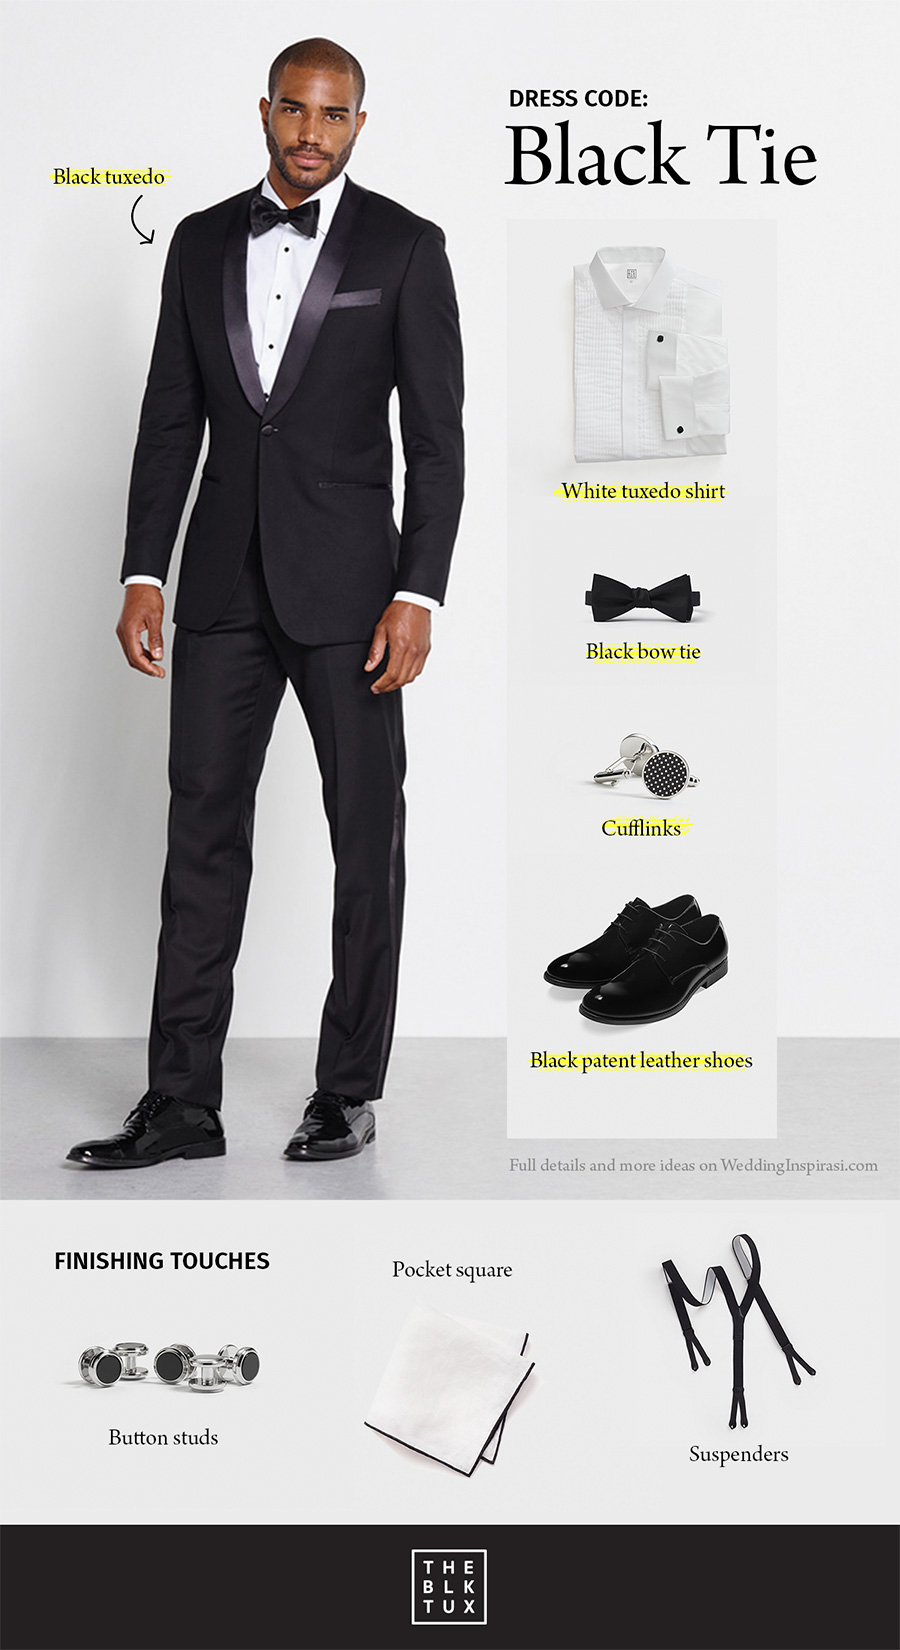 The Black Tux Wedding Dress Code Tie Modern Style Suit Tuxedo Al Service